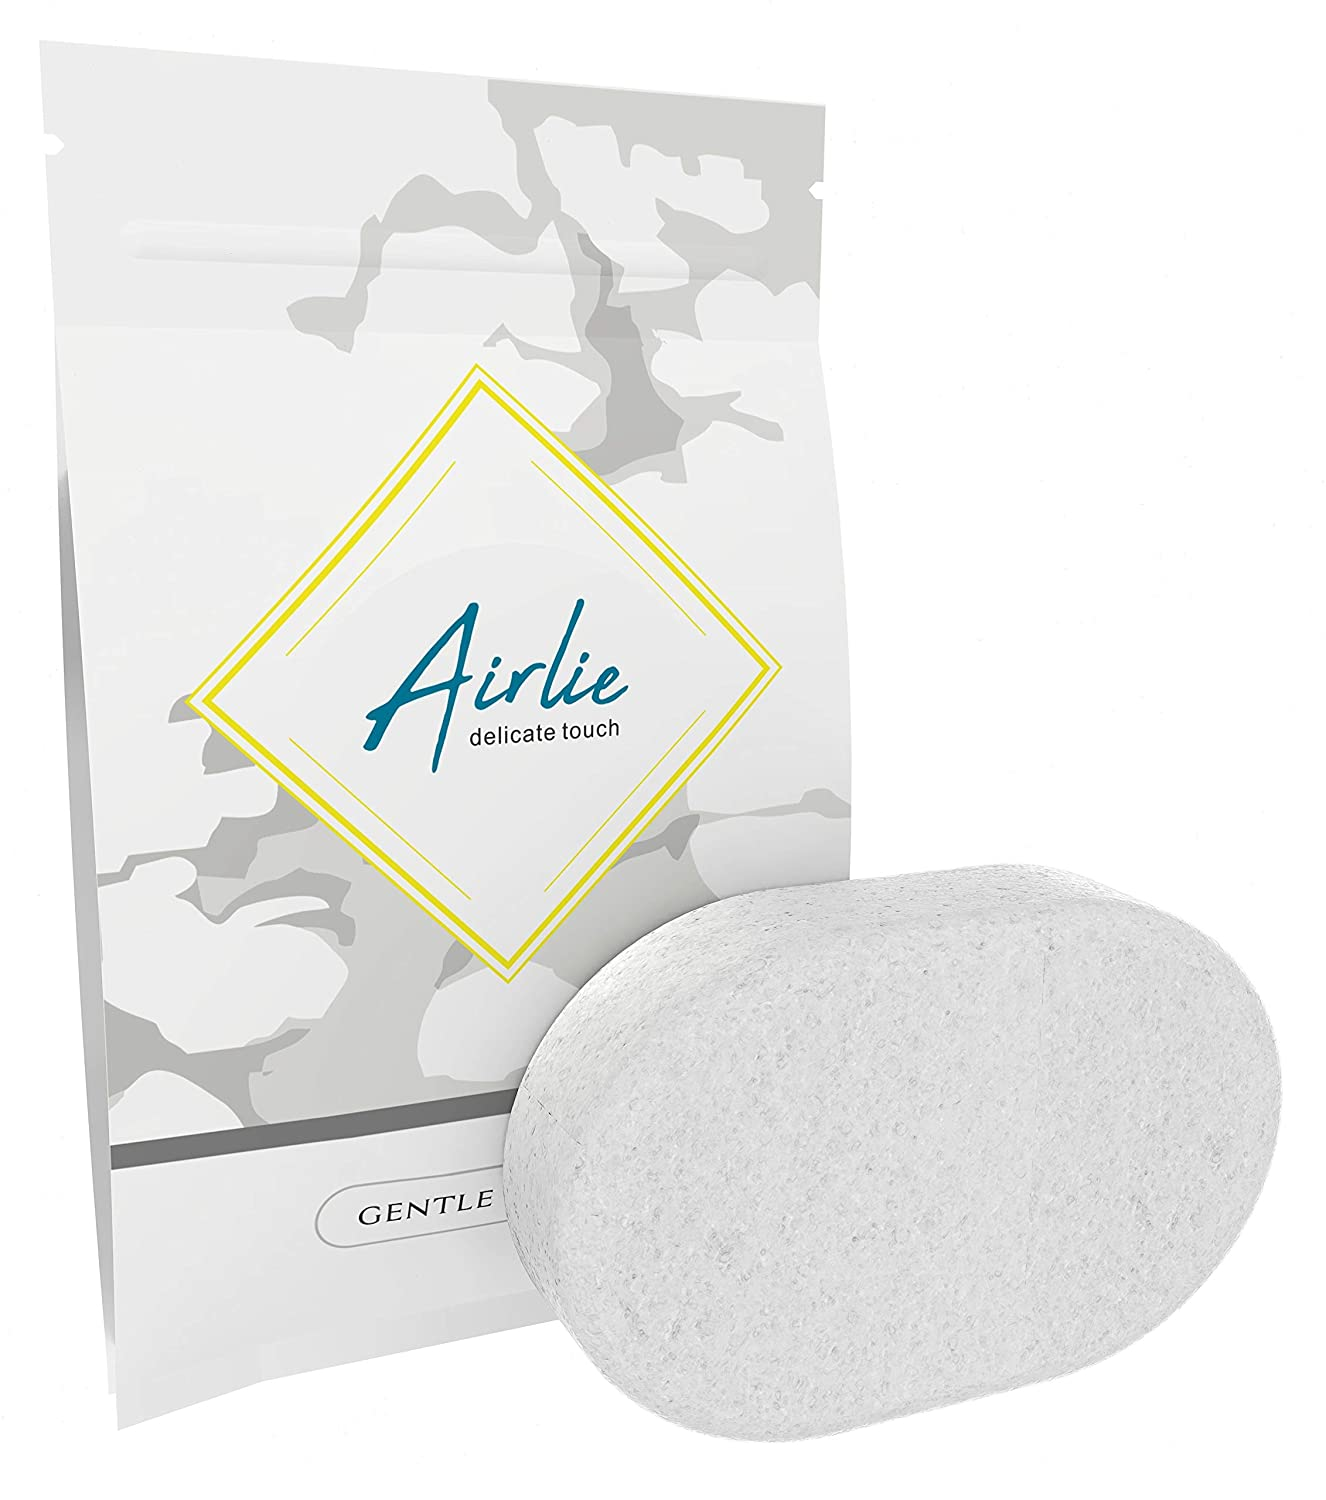 Soft konjac Bath or Shower Sponge for Toddler Baby or for Bathing a Newborn Natural Vegetable Fiber Airlie Gentle Sponge Free from irritants and additives.